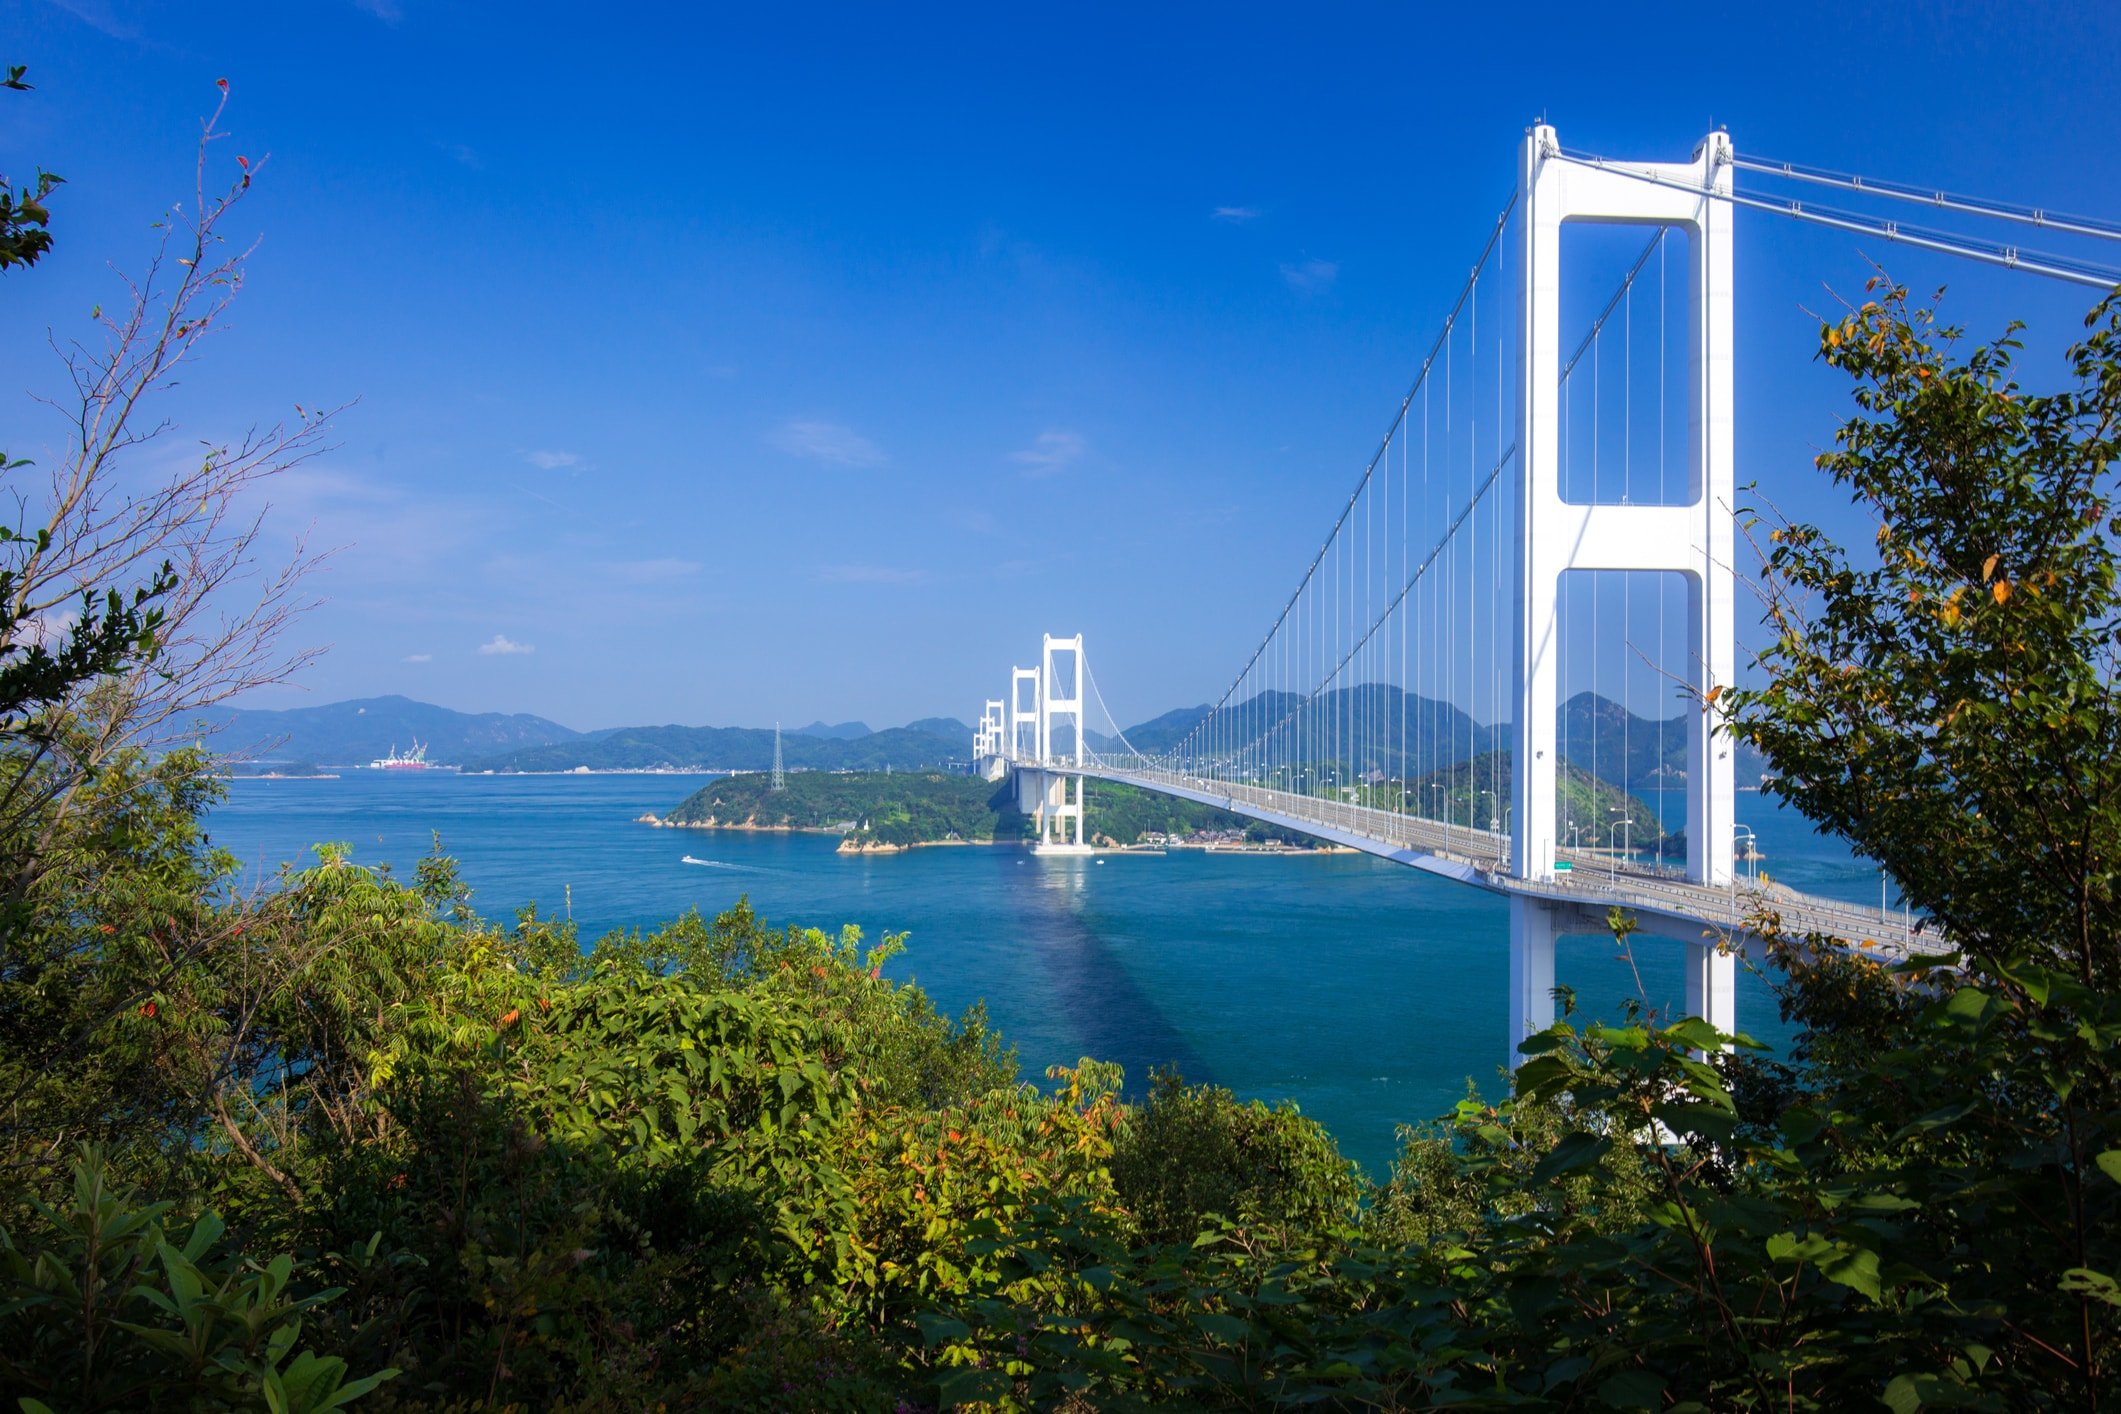 Beautiful Japanese landscapes Kurushima Bridges in Seto Inland Sea, Japan